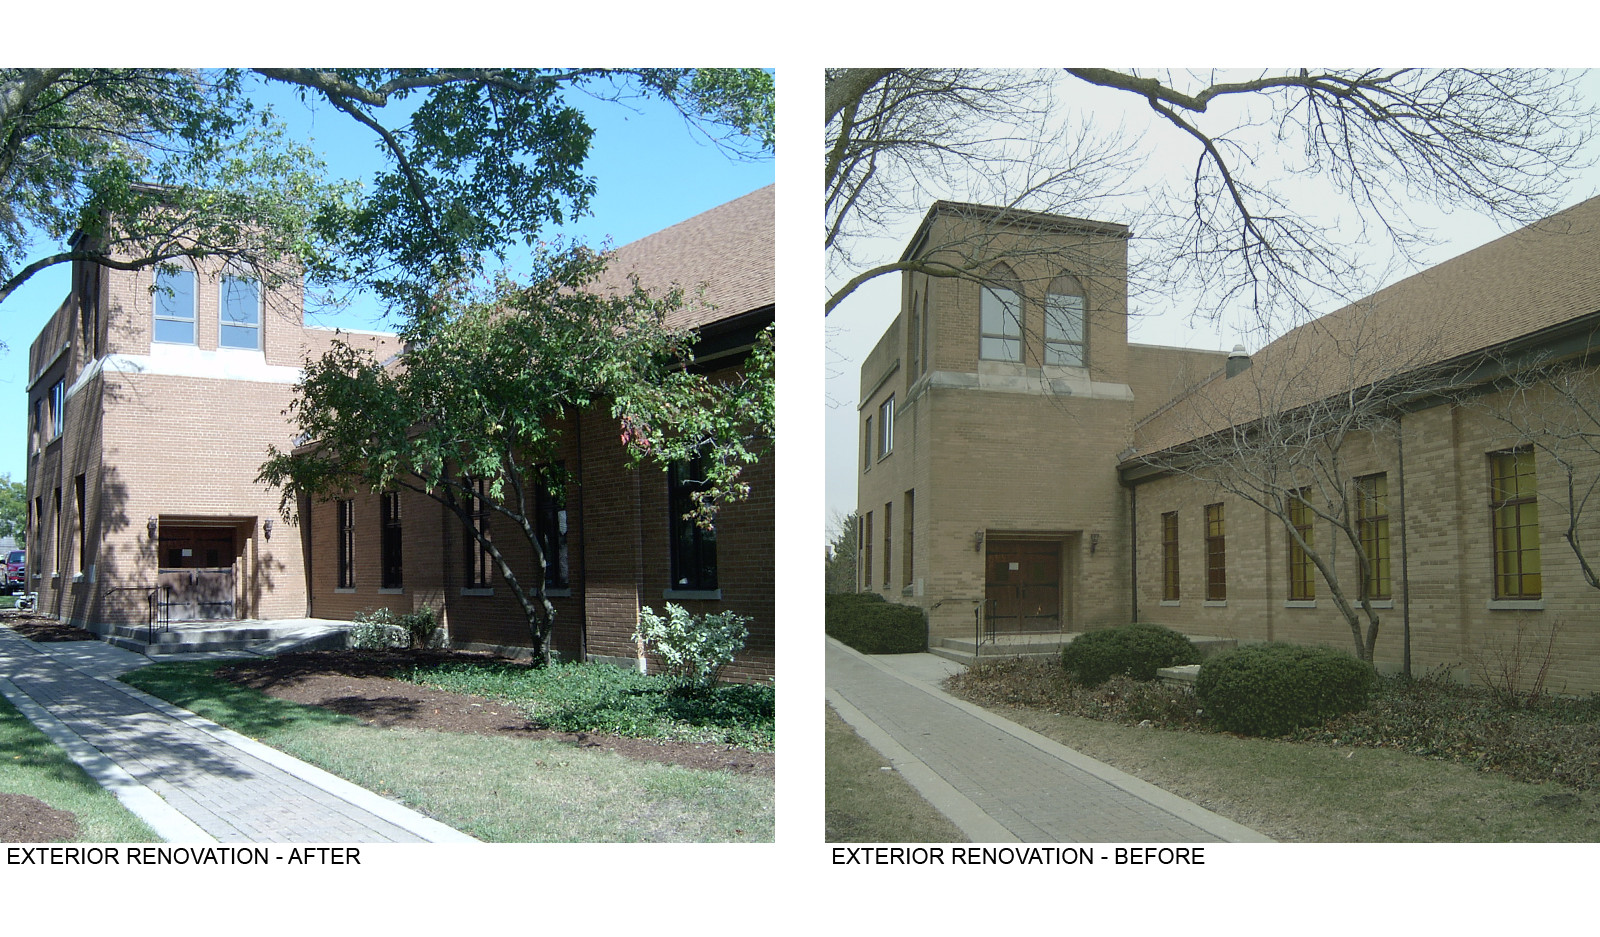 Exterior Renovation Before and After